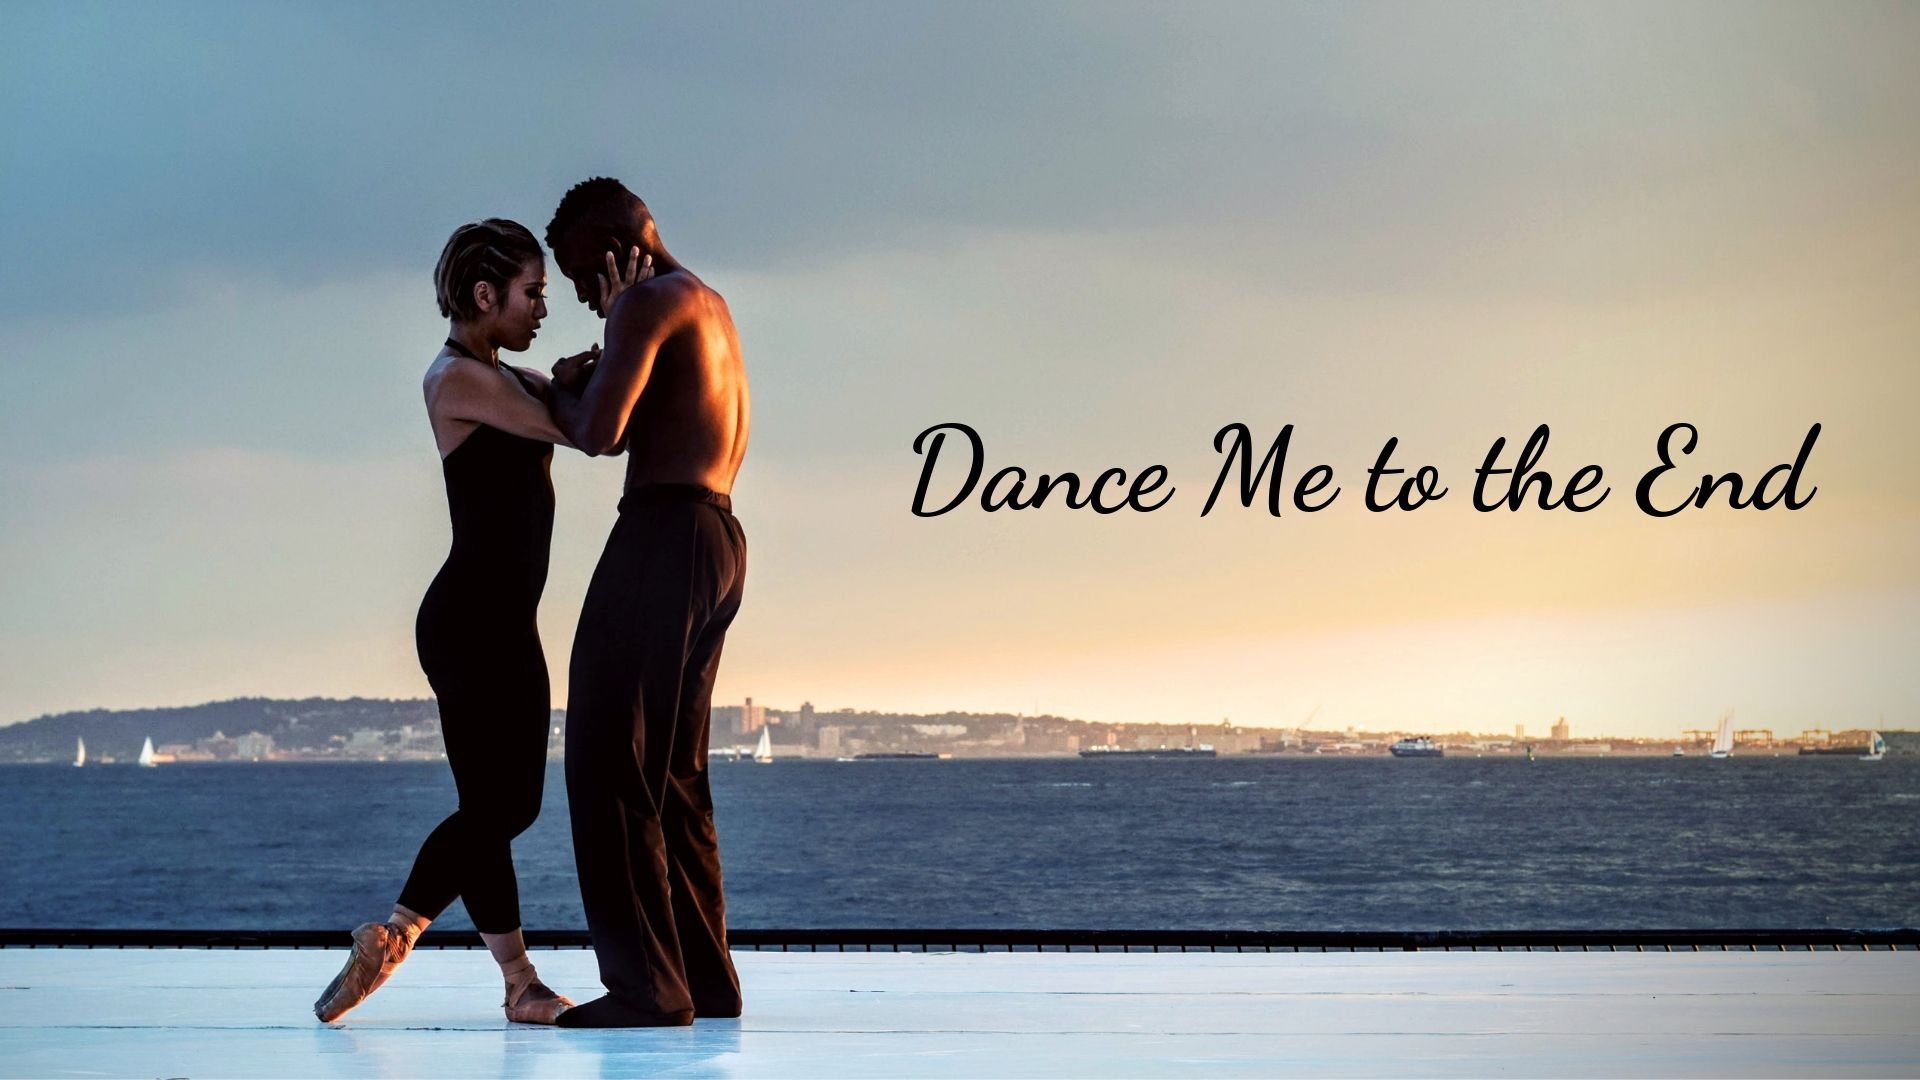 banner-dance-me-to-the-end-01.jpg